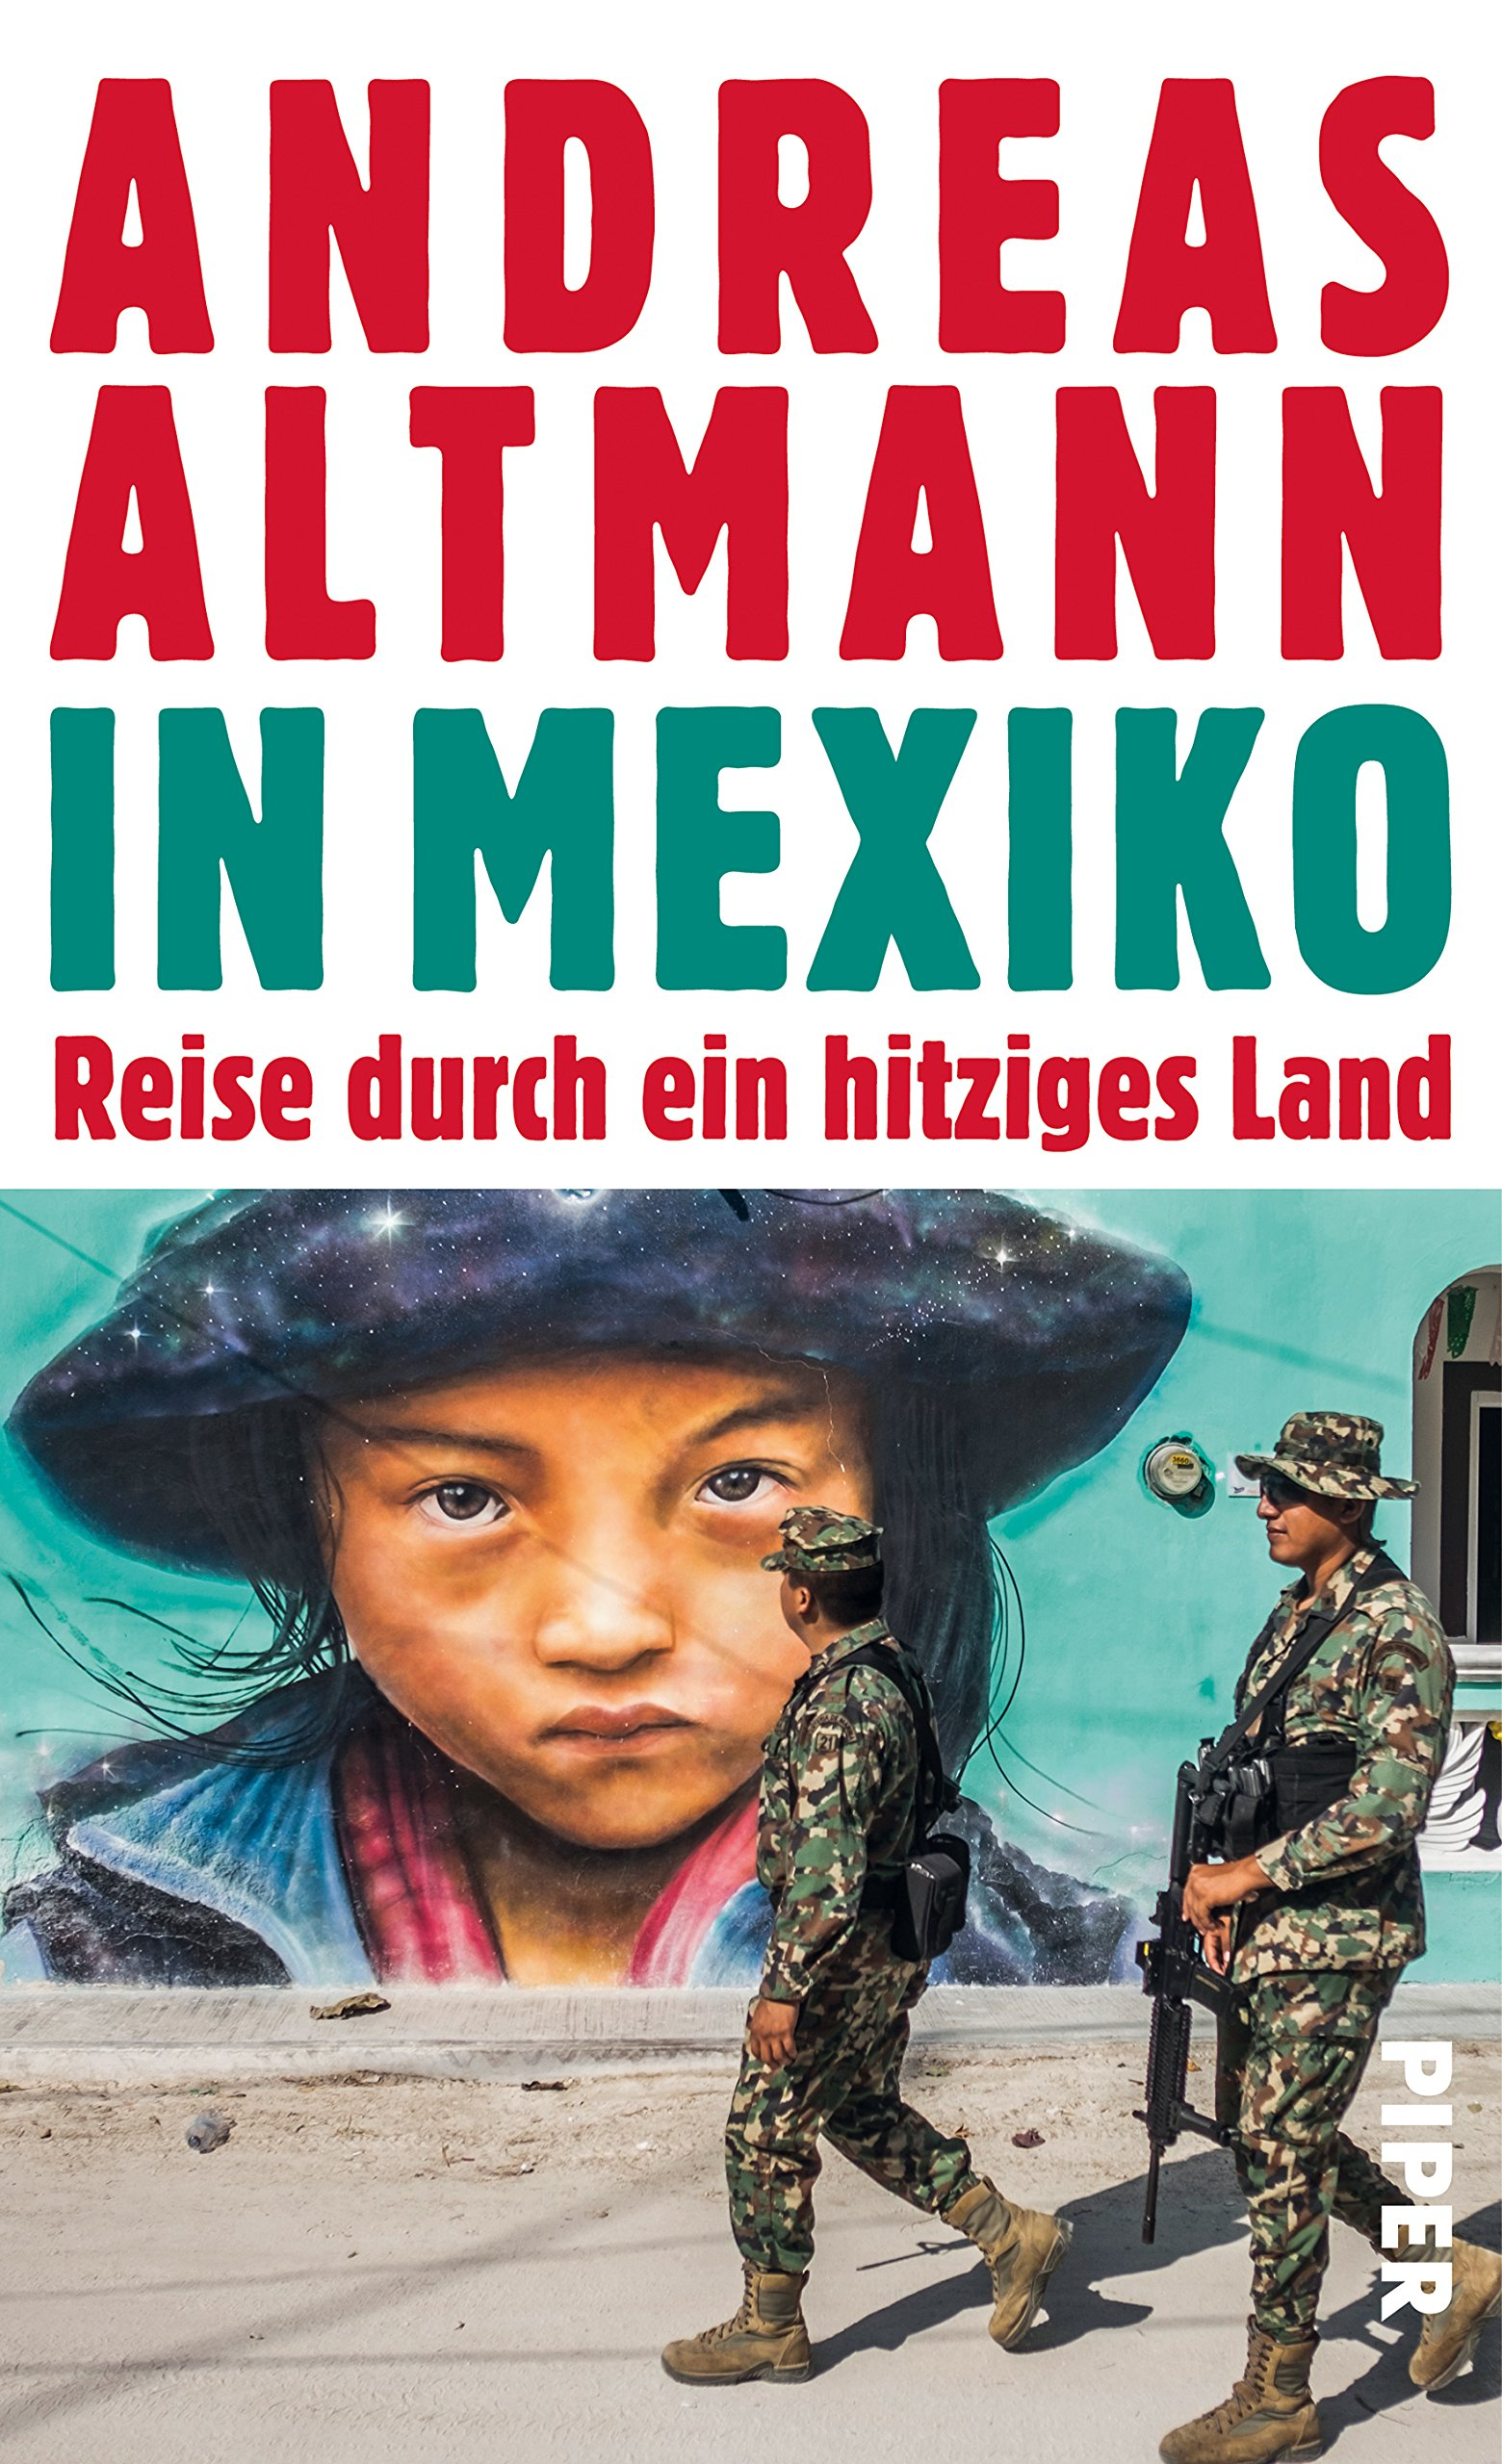 in-mexiko-reise-durch-ein-hitziges-land